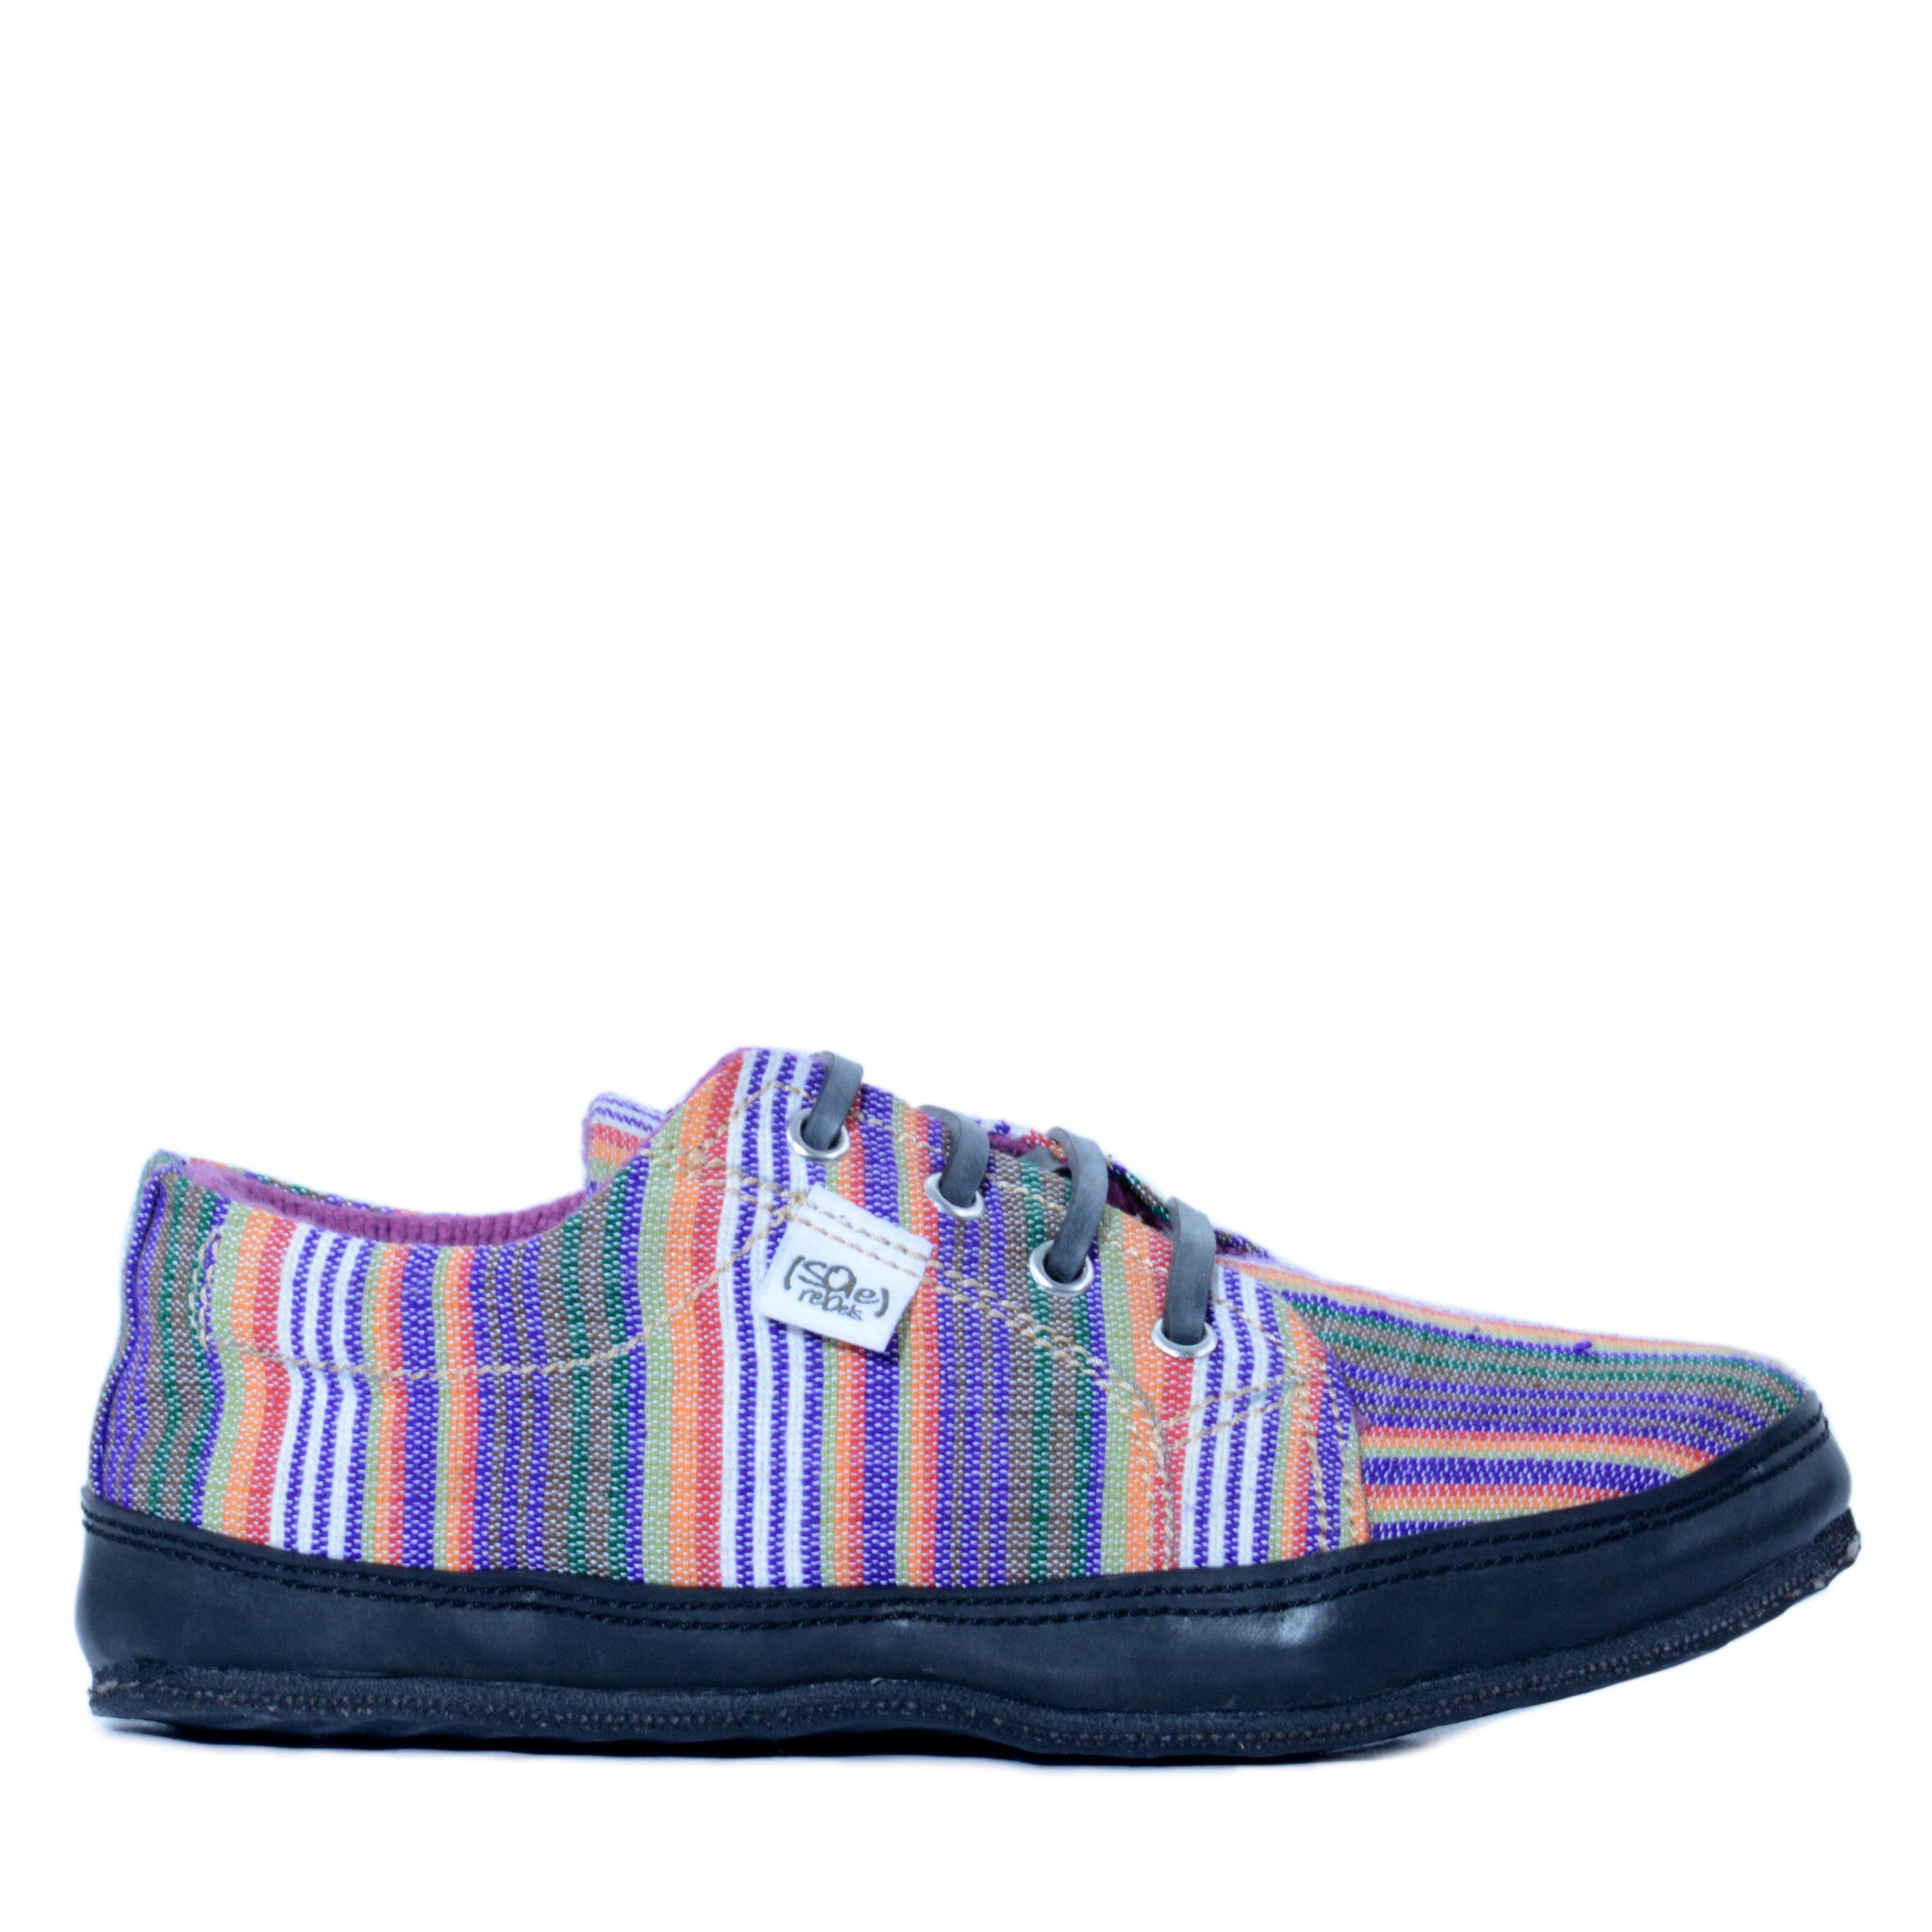 solerebels Purple urban runner FREEEK Lace-Ups